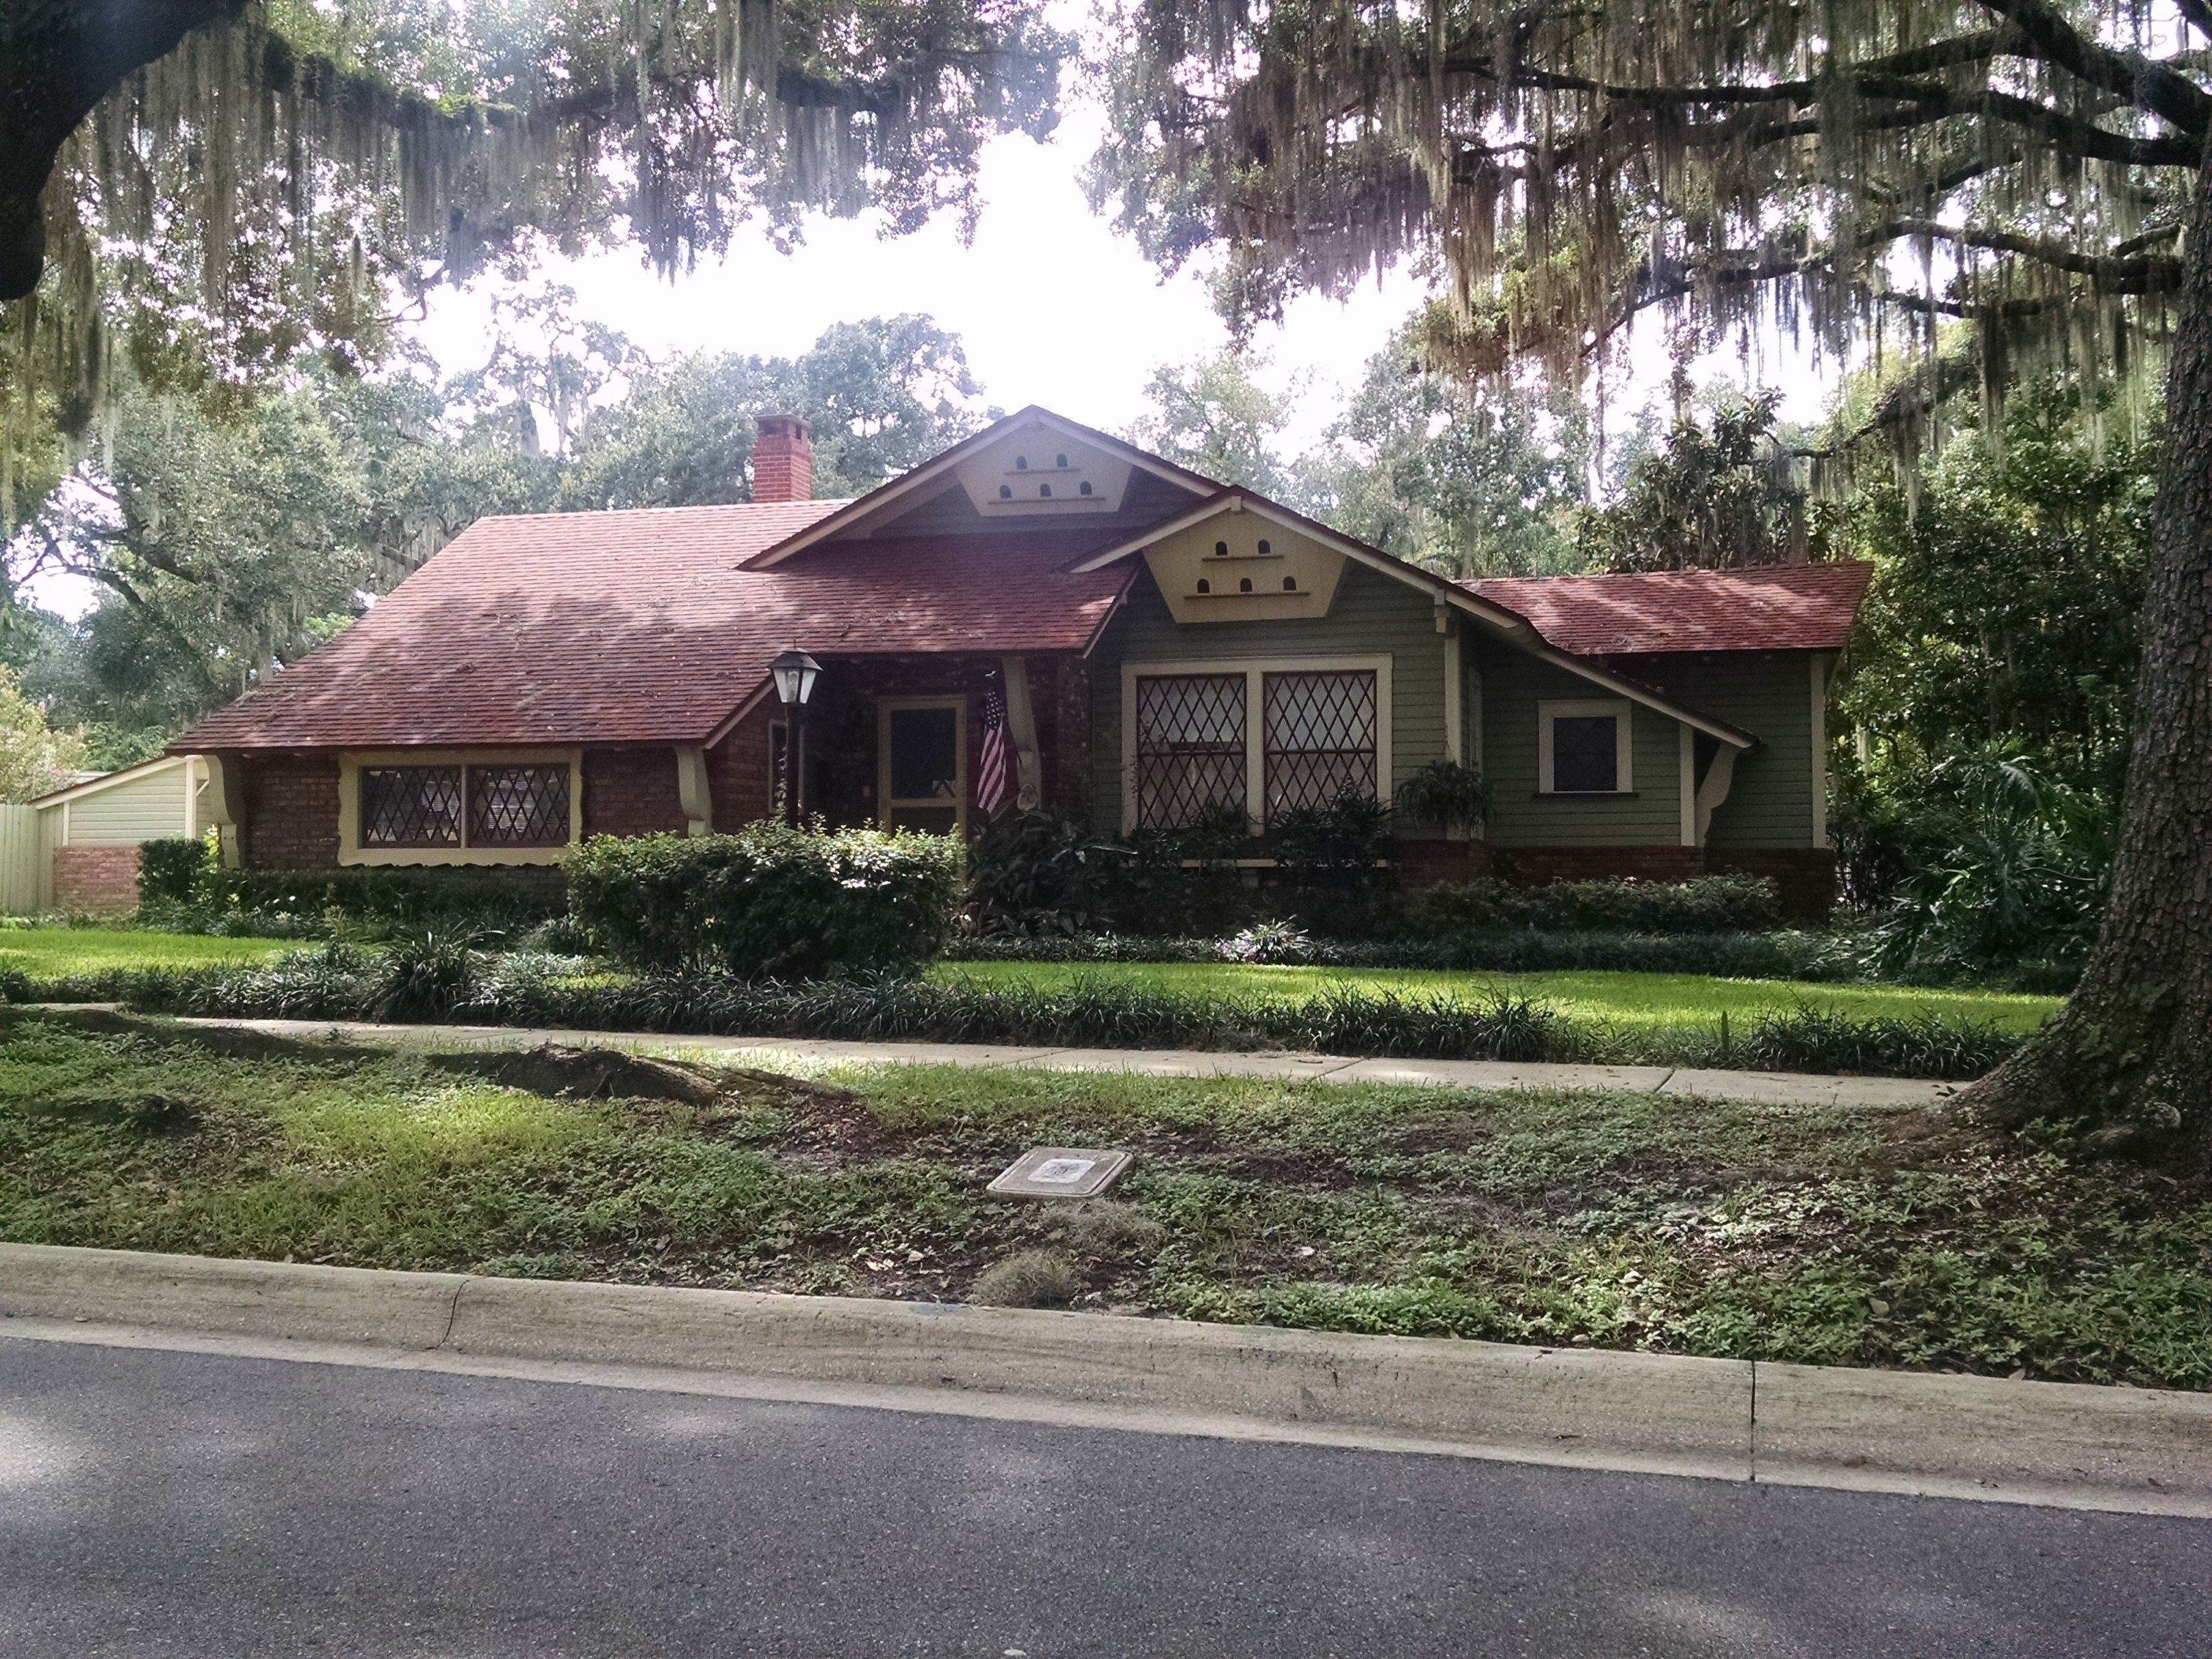 Florida isn't always trashy! Orlando, Florida. Taken with a phone :( [3232x2424] - Cool Houses Pictures And Dream Home Unique Designs, Big, Medium Size And Small House Design Ideas